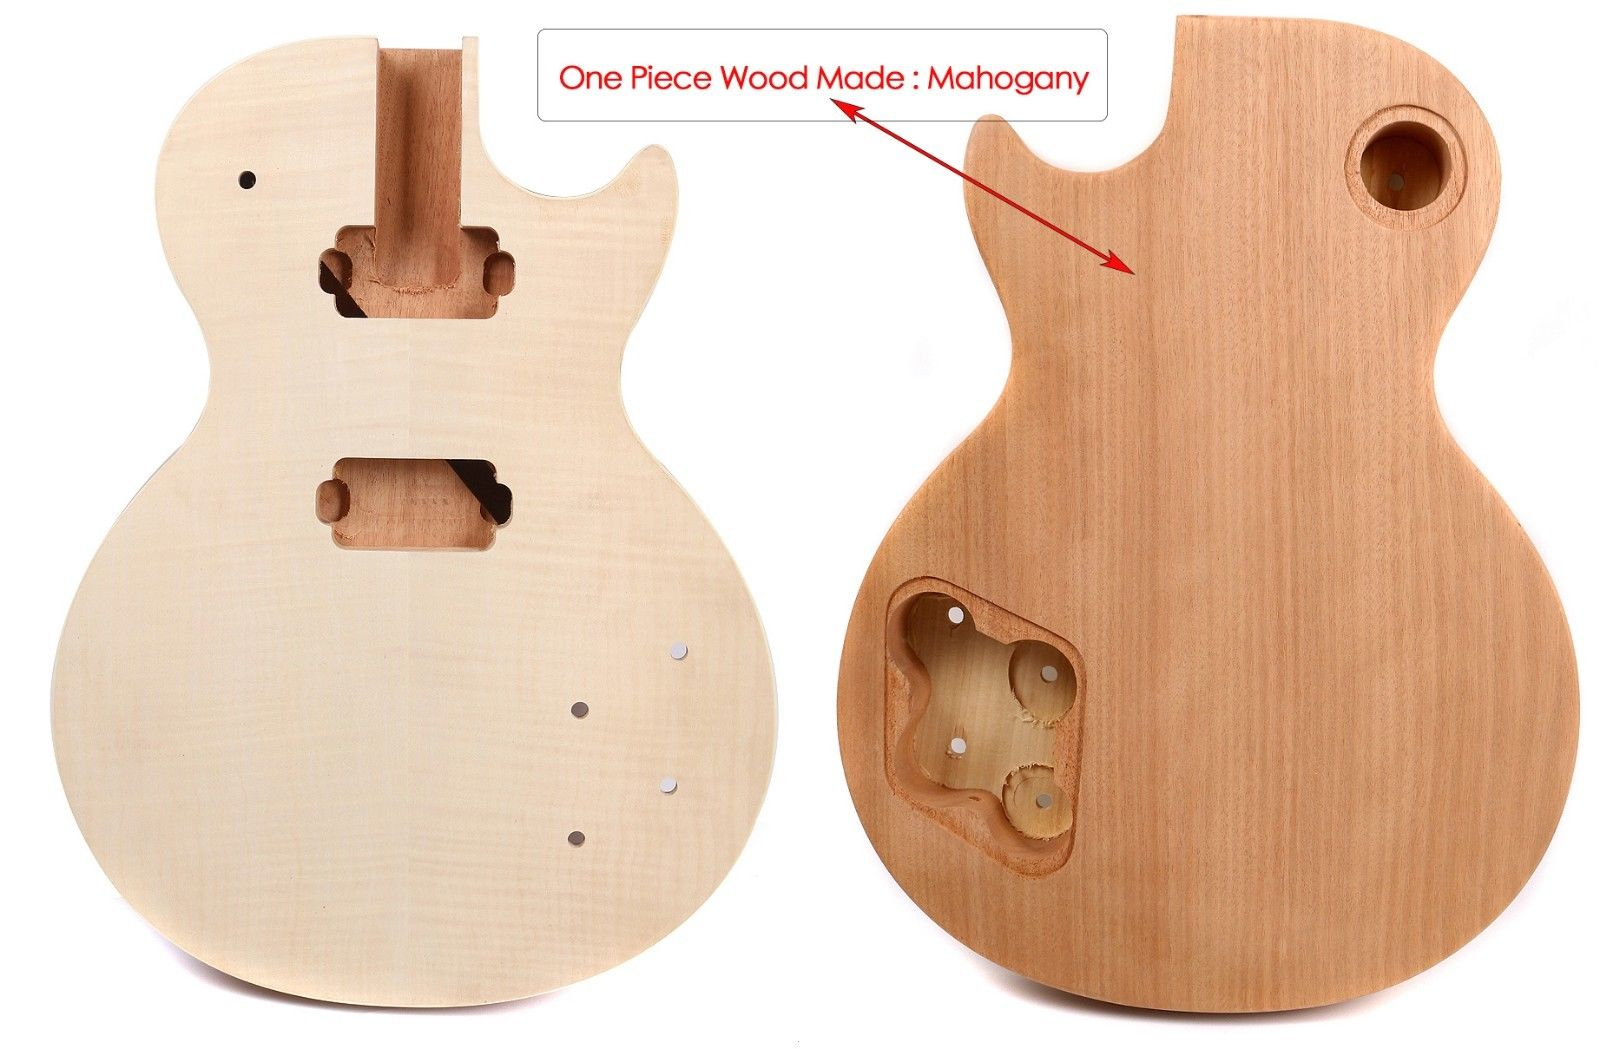 LP Electric guitar body Unfinished Mahogany One Piece wood Made Set In style one 21 unfinished electric guitar body mahogany made